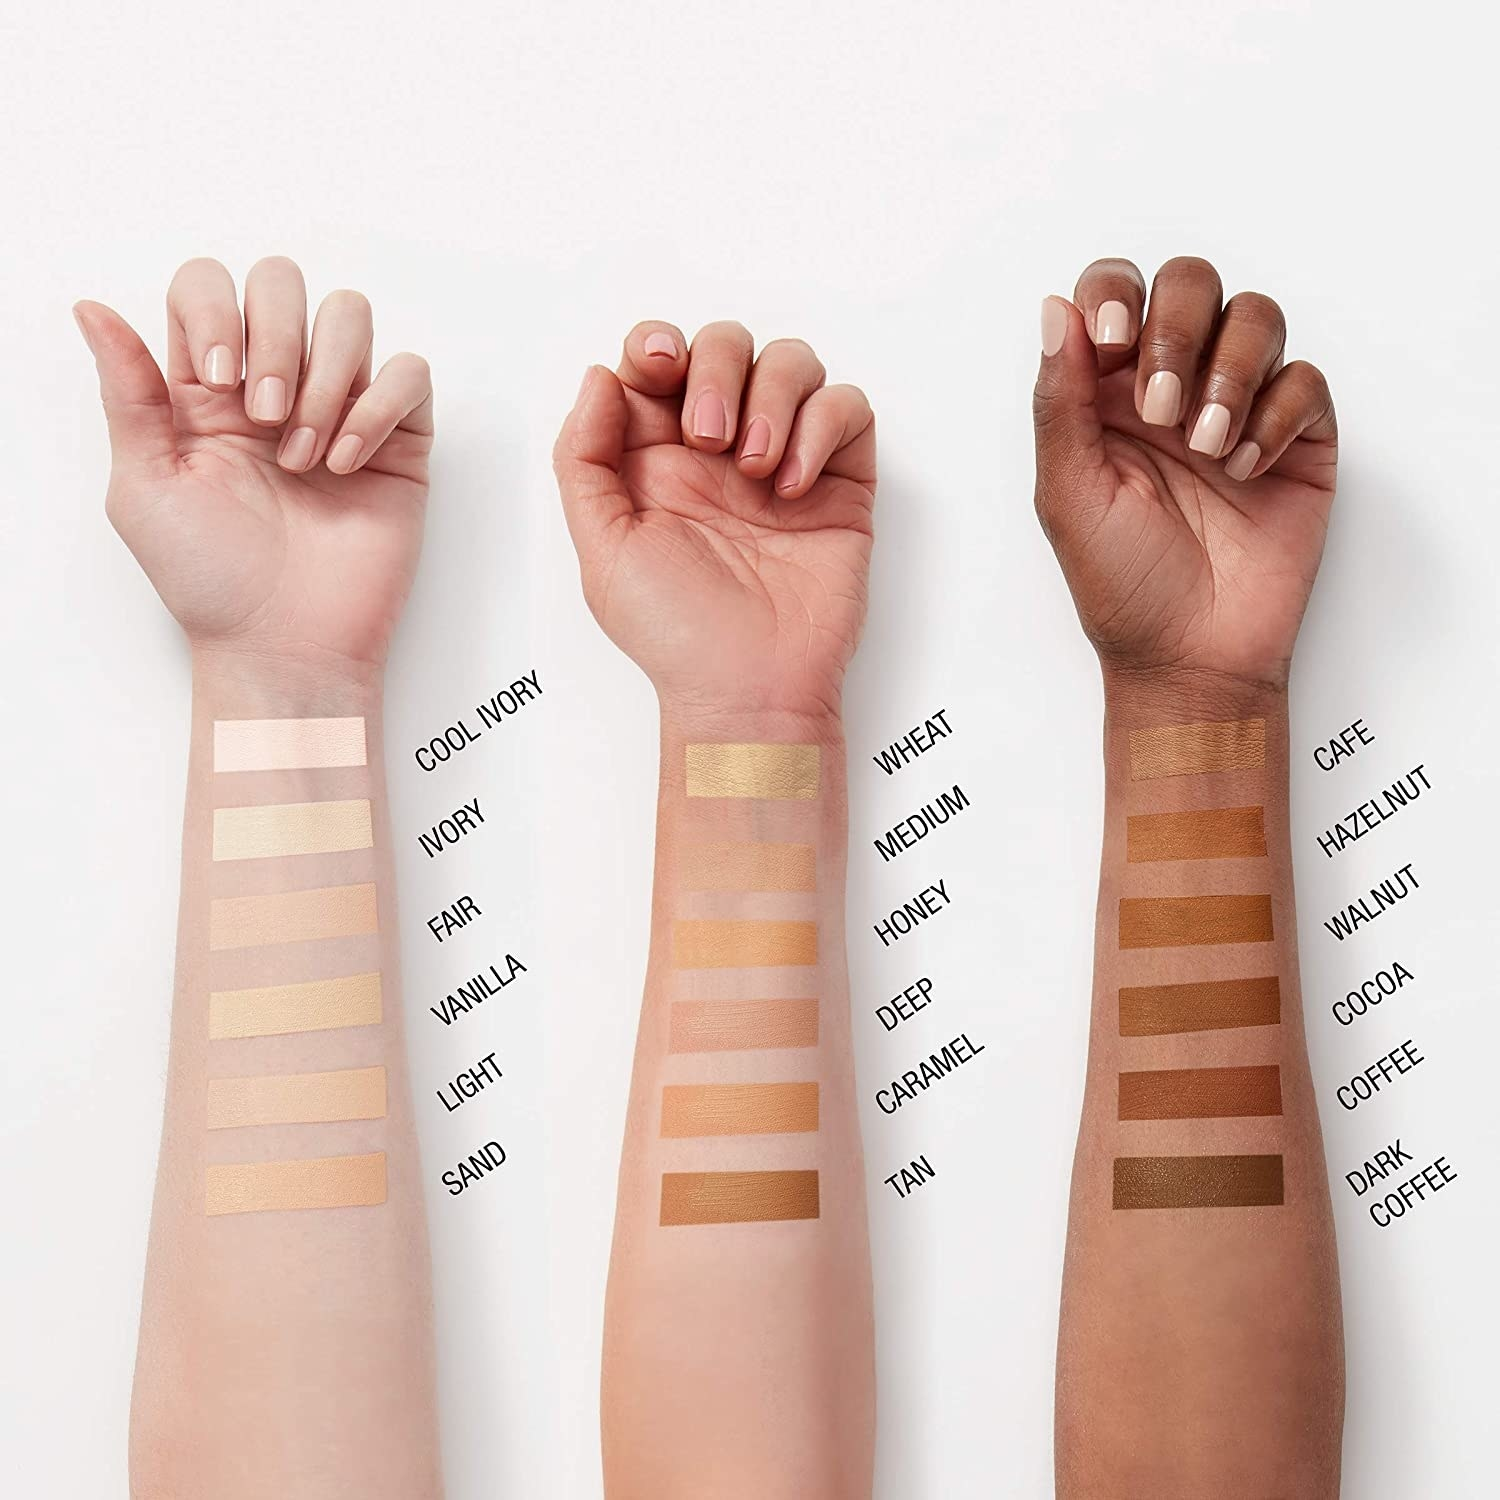 A trio of hands swatching the different shades of concealer